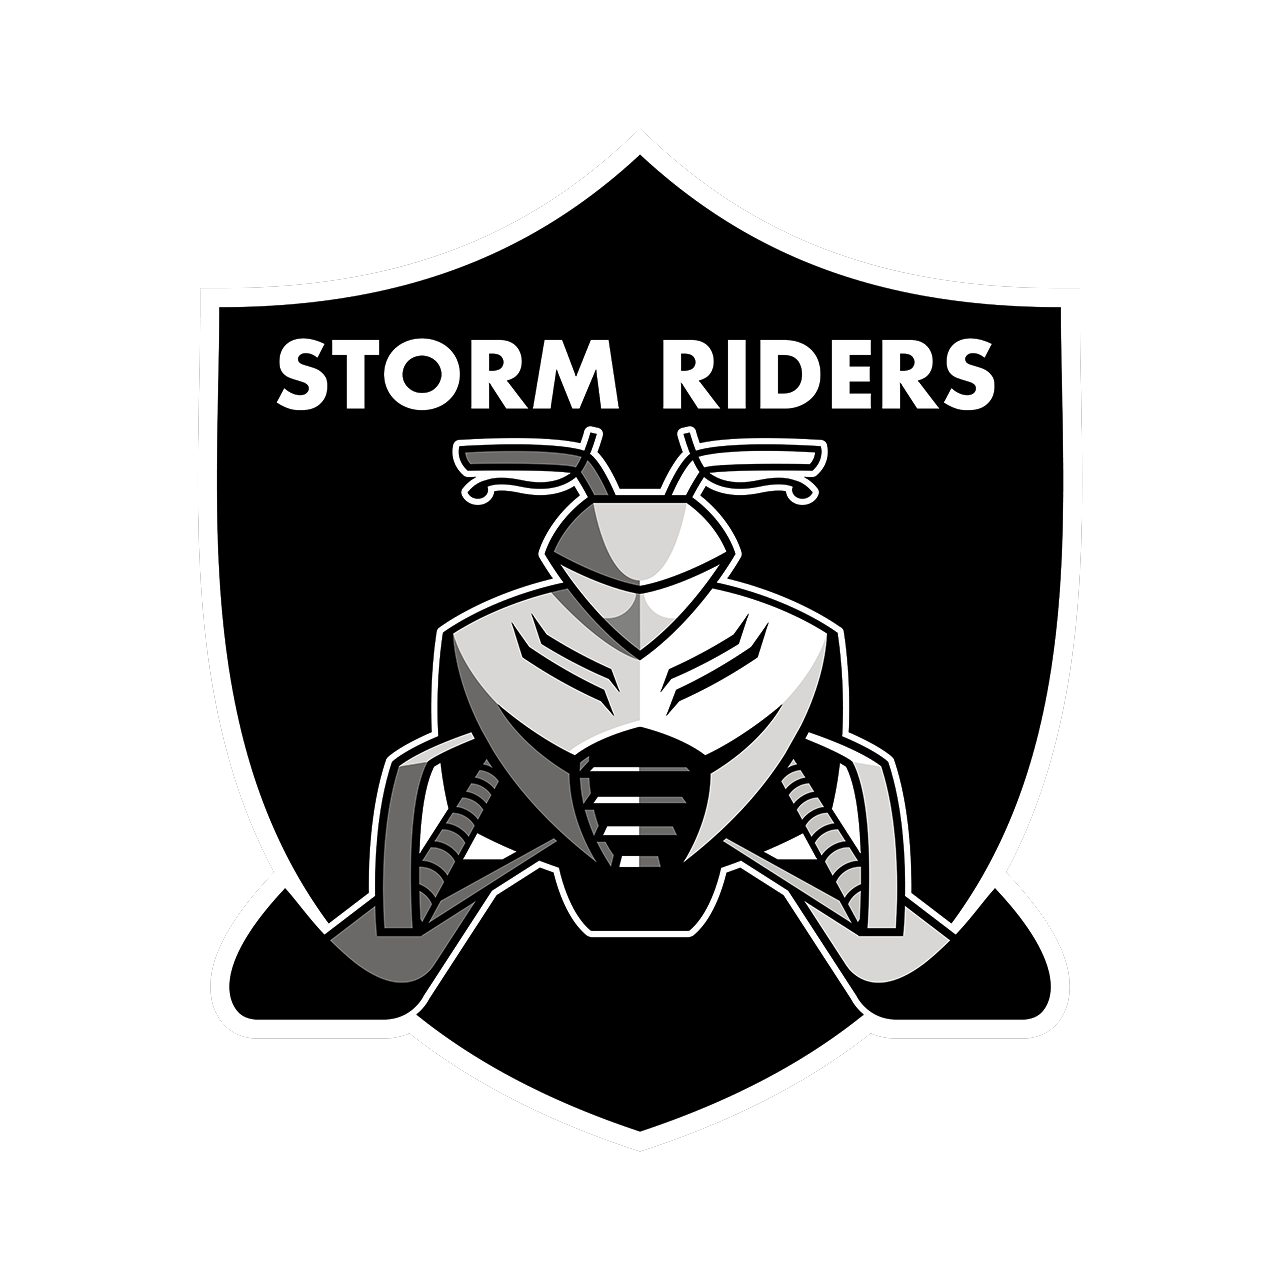 World Cup Storm Riders